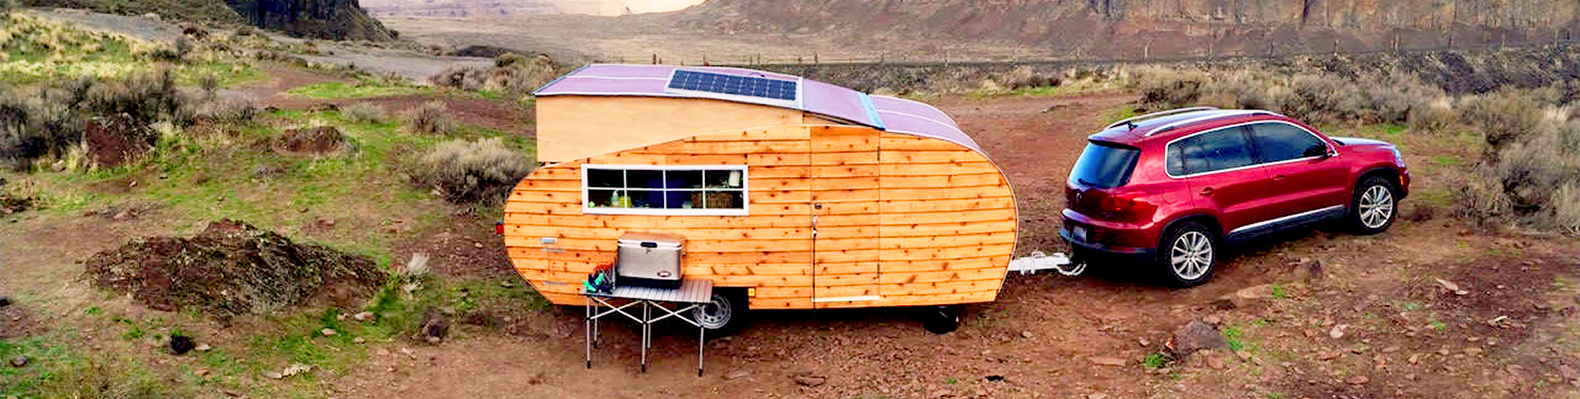 Charming Wood Teardrop Trailer Is Perfect For Off Grid Eco Adventures